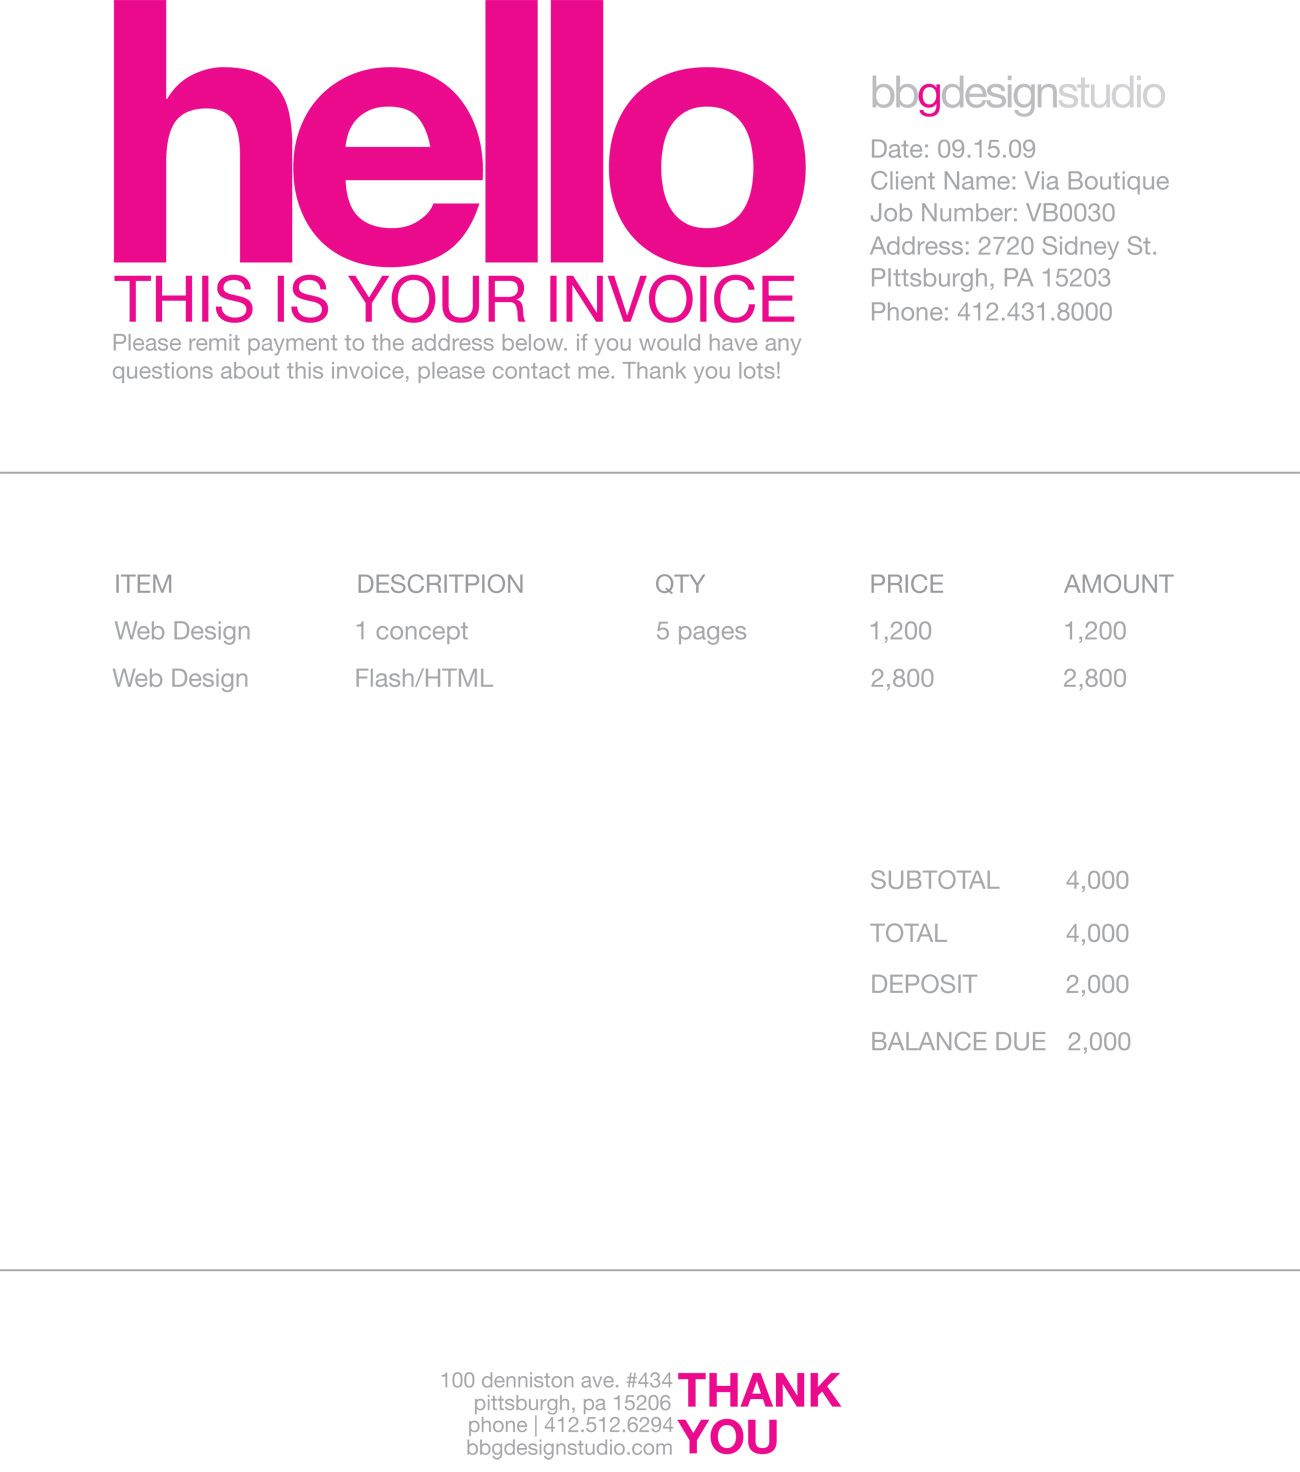 Reliefworkersus  Nice  Images About Invoice Design On Pinterest With Lovable Target Return No Receipt Besides How To Add Read Receipt In Outlook Furthermore Custom Receipt Books With Delightful Receipt Hog Cheats Also Please Confirm Receipt In Addition Target No Receipt Return Policy And Walmart Returns Without A Receipt As Well As American Depository Receipts Additionally What Does Receipt Mean From Pinterestcom With Reliefworkersus  Lovable  Images About Invoice Design On Pinterest With Delightful Target Return No Receipt Besides How To Add Read Receipt In Outlook Furthermore Custom Receipt Books And Nice Receipt Hog Cheats Also Please Confirm Receipt In Addition Target No Receipt Return Policy From Pinterestcom